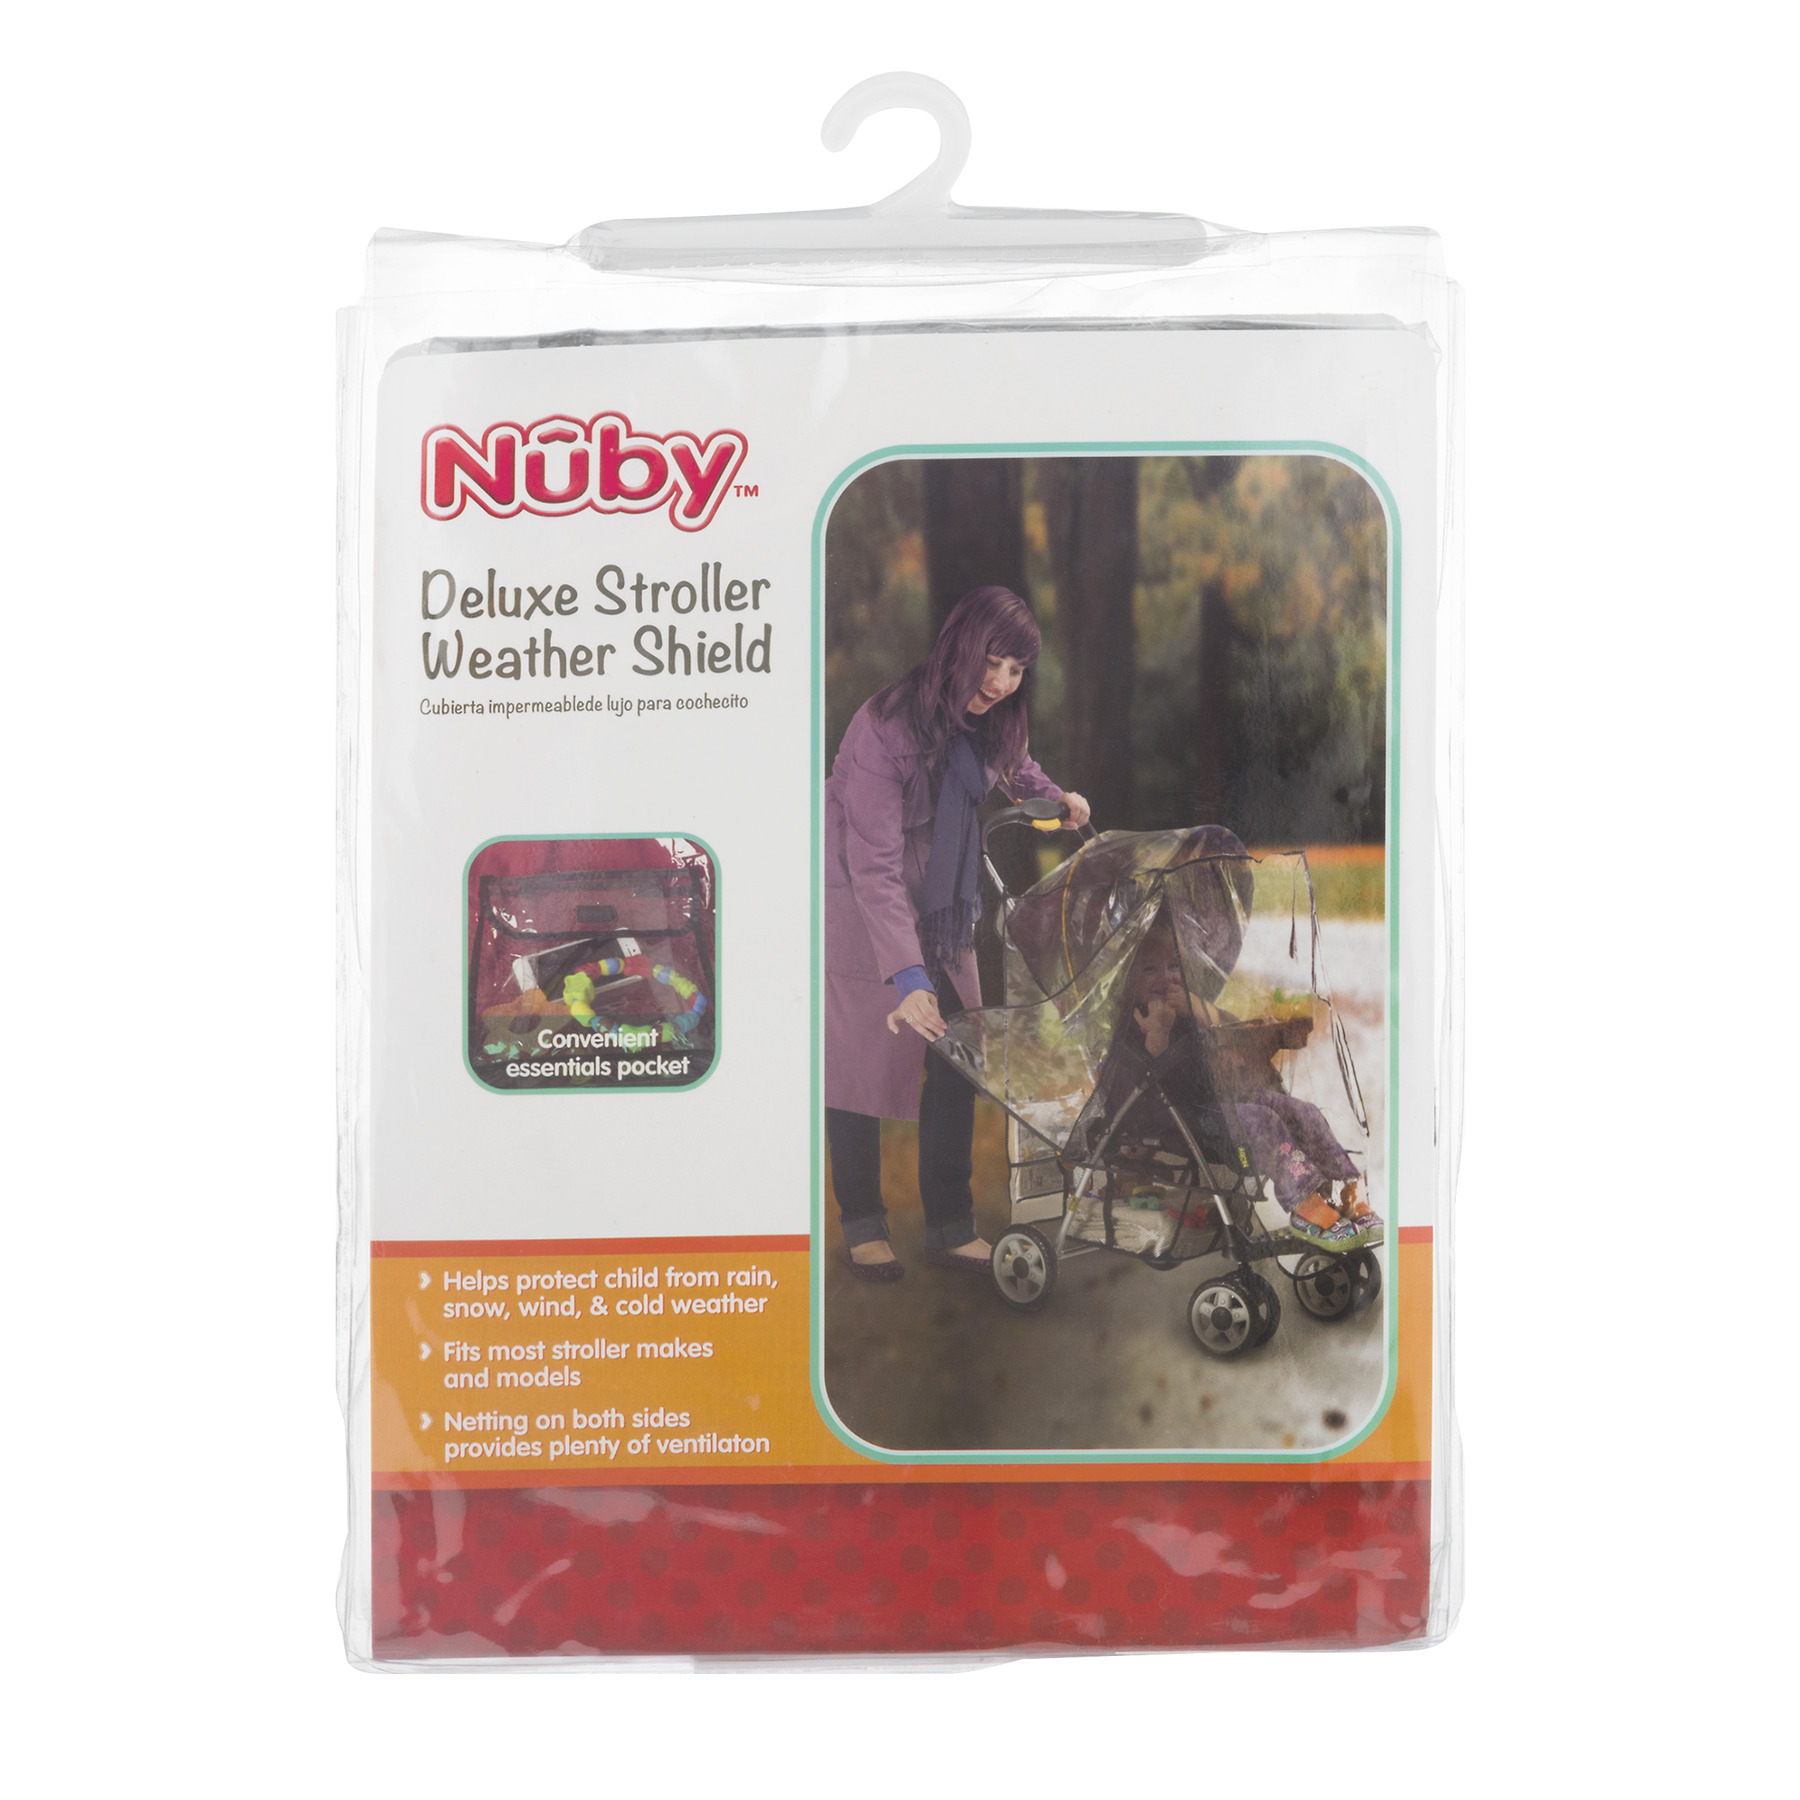 Nuby Deluxe Stroller Weather Shield, 1.0 CT